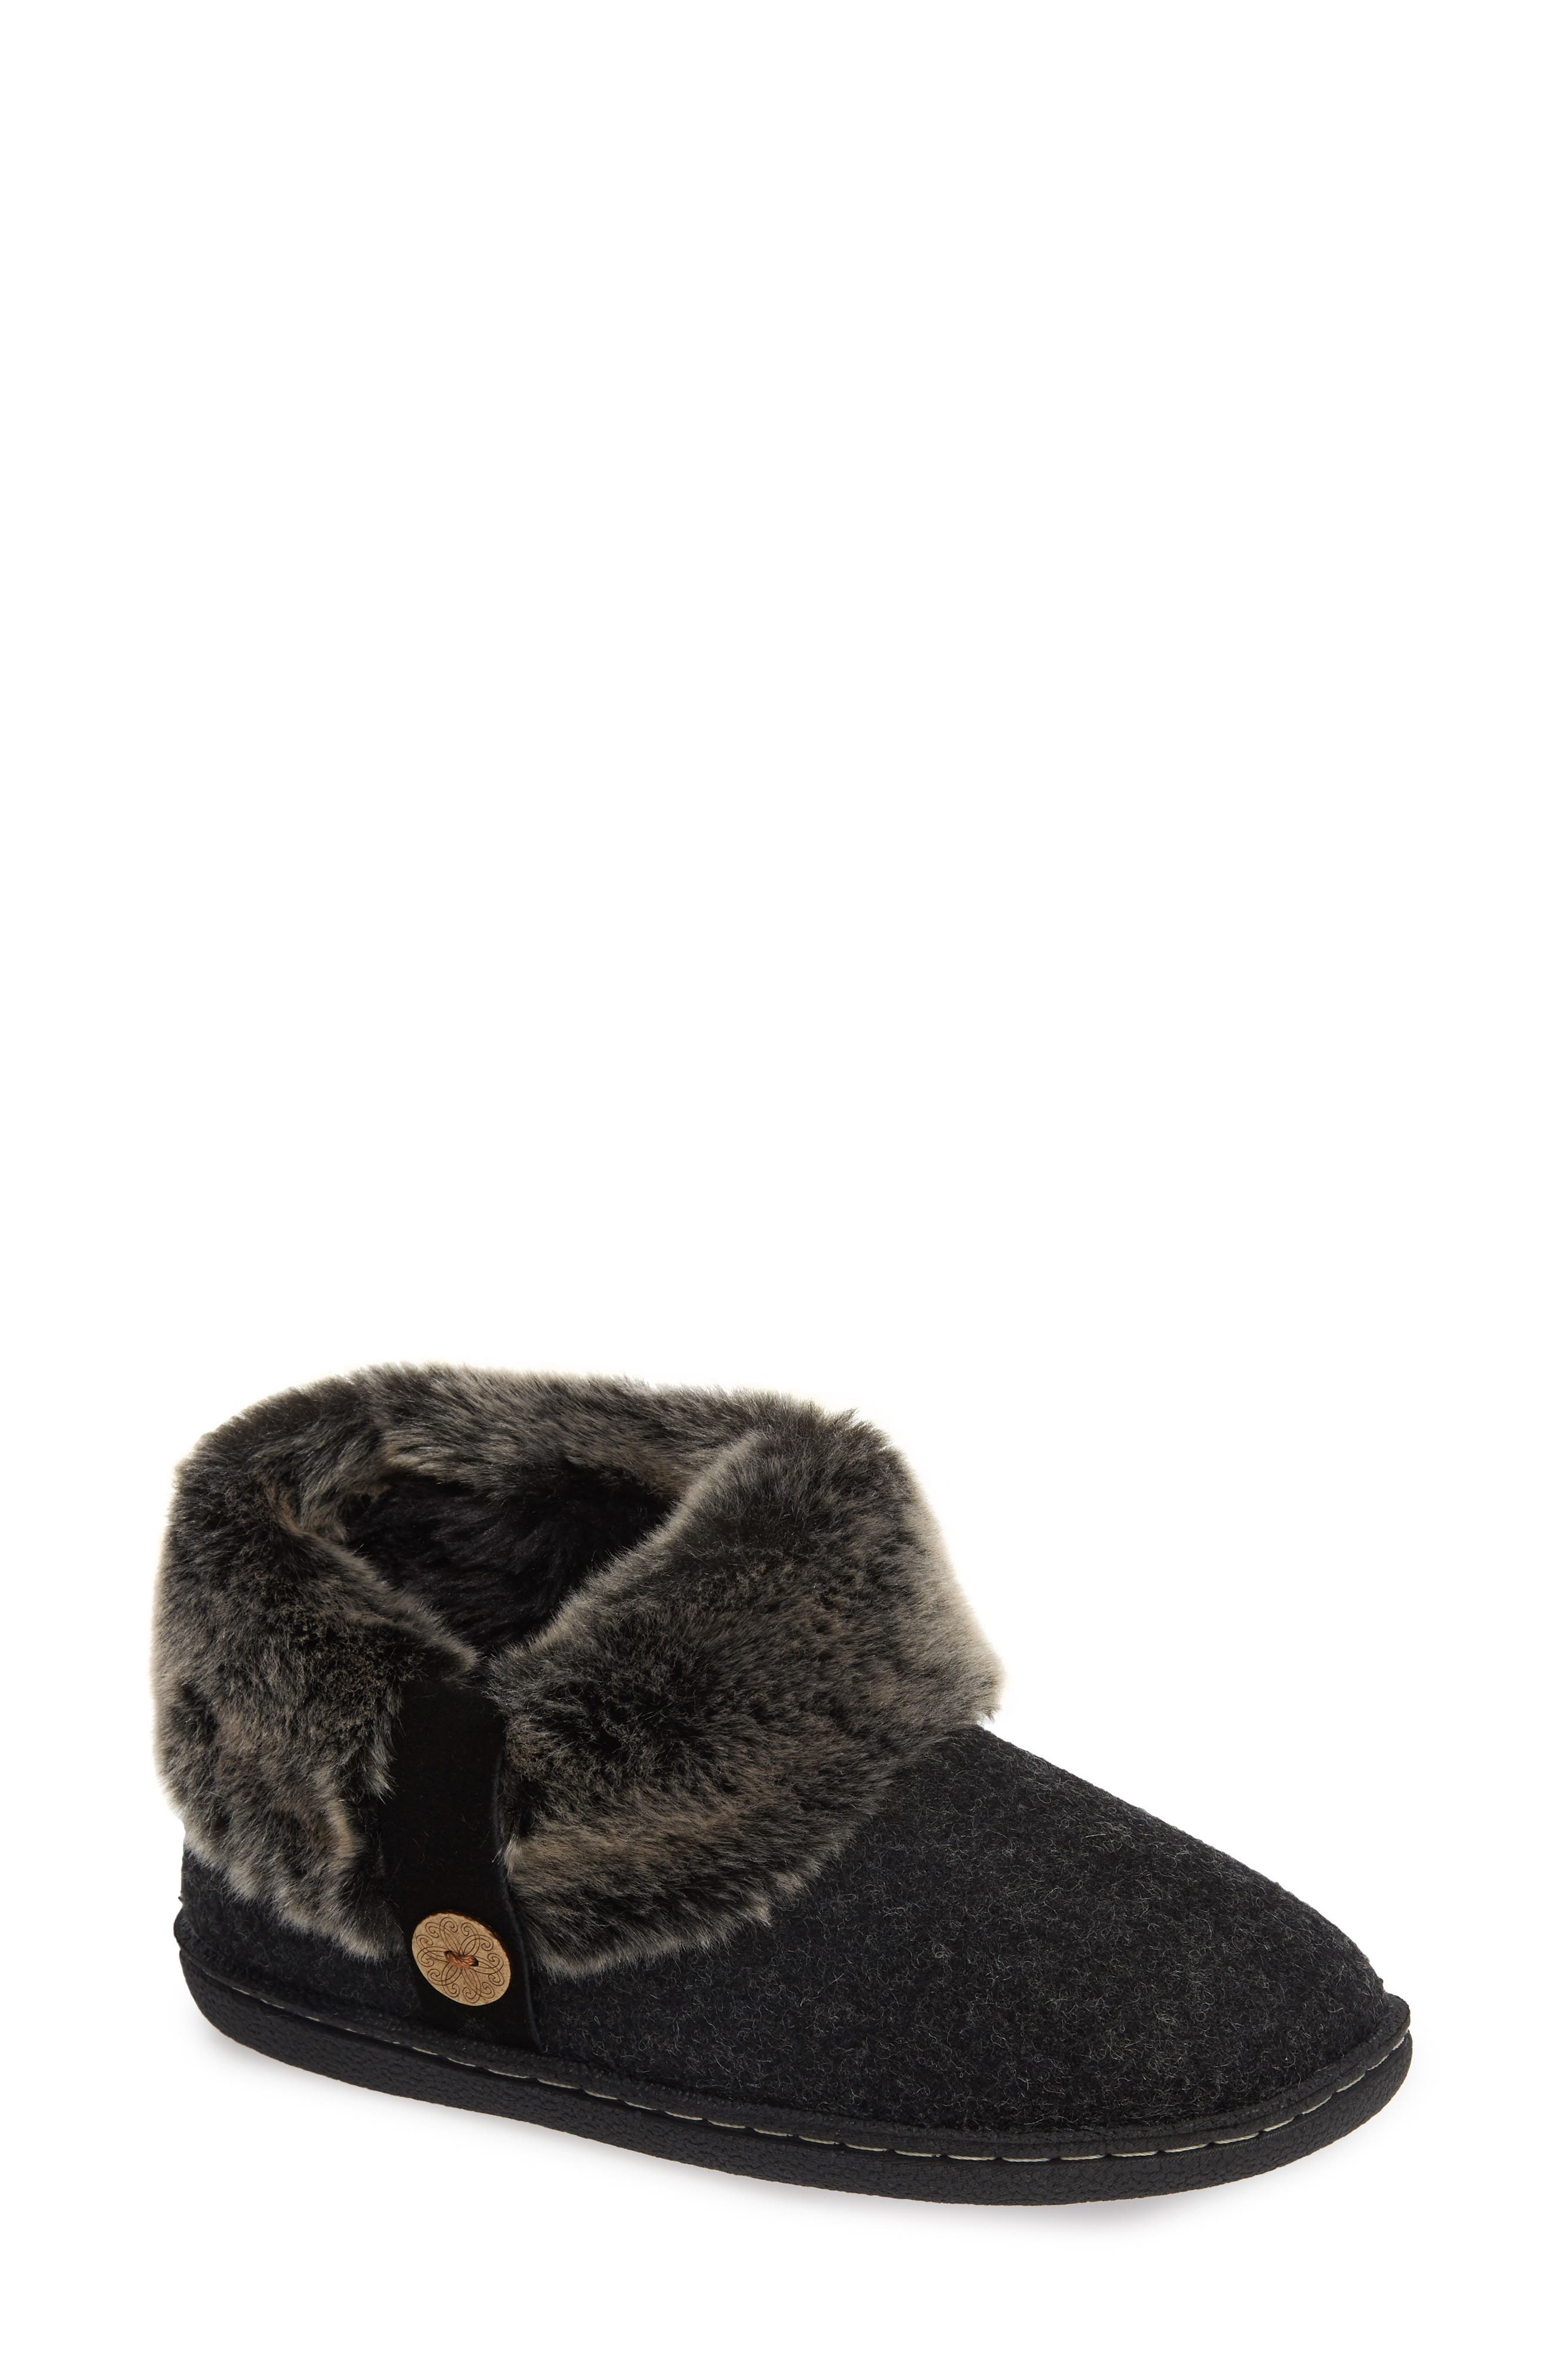 Grand Lodge Slipper,                         Main,                         color, BLACK WOOL